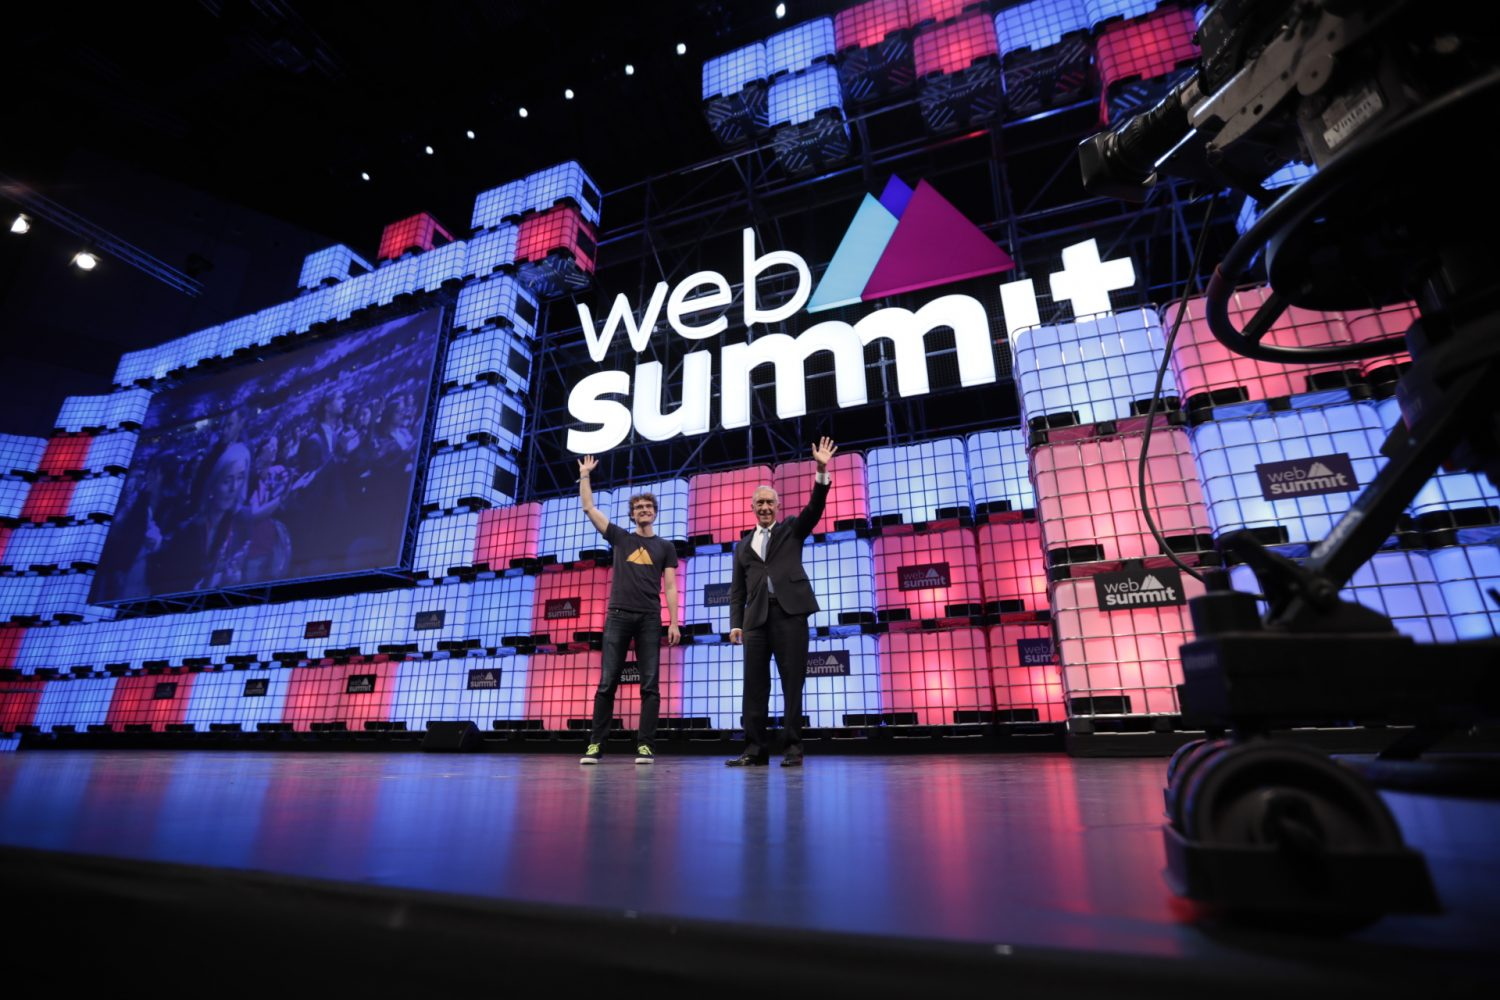 Web Summit 2018 is Here! Learn All About This Event web summit Web Summit 2018 is Here 20171109181552  ndr0597